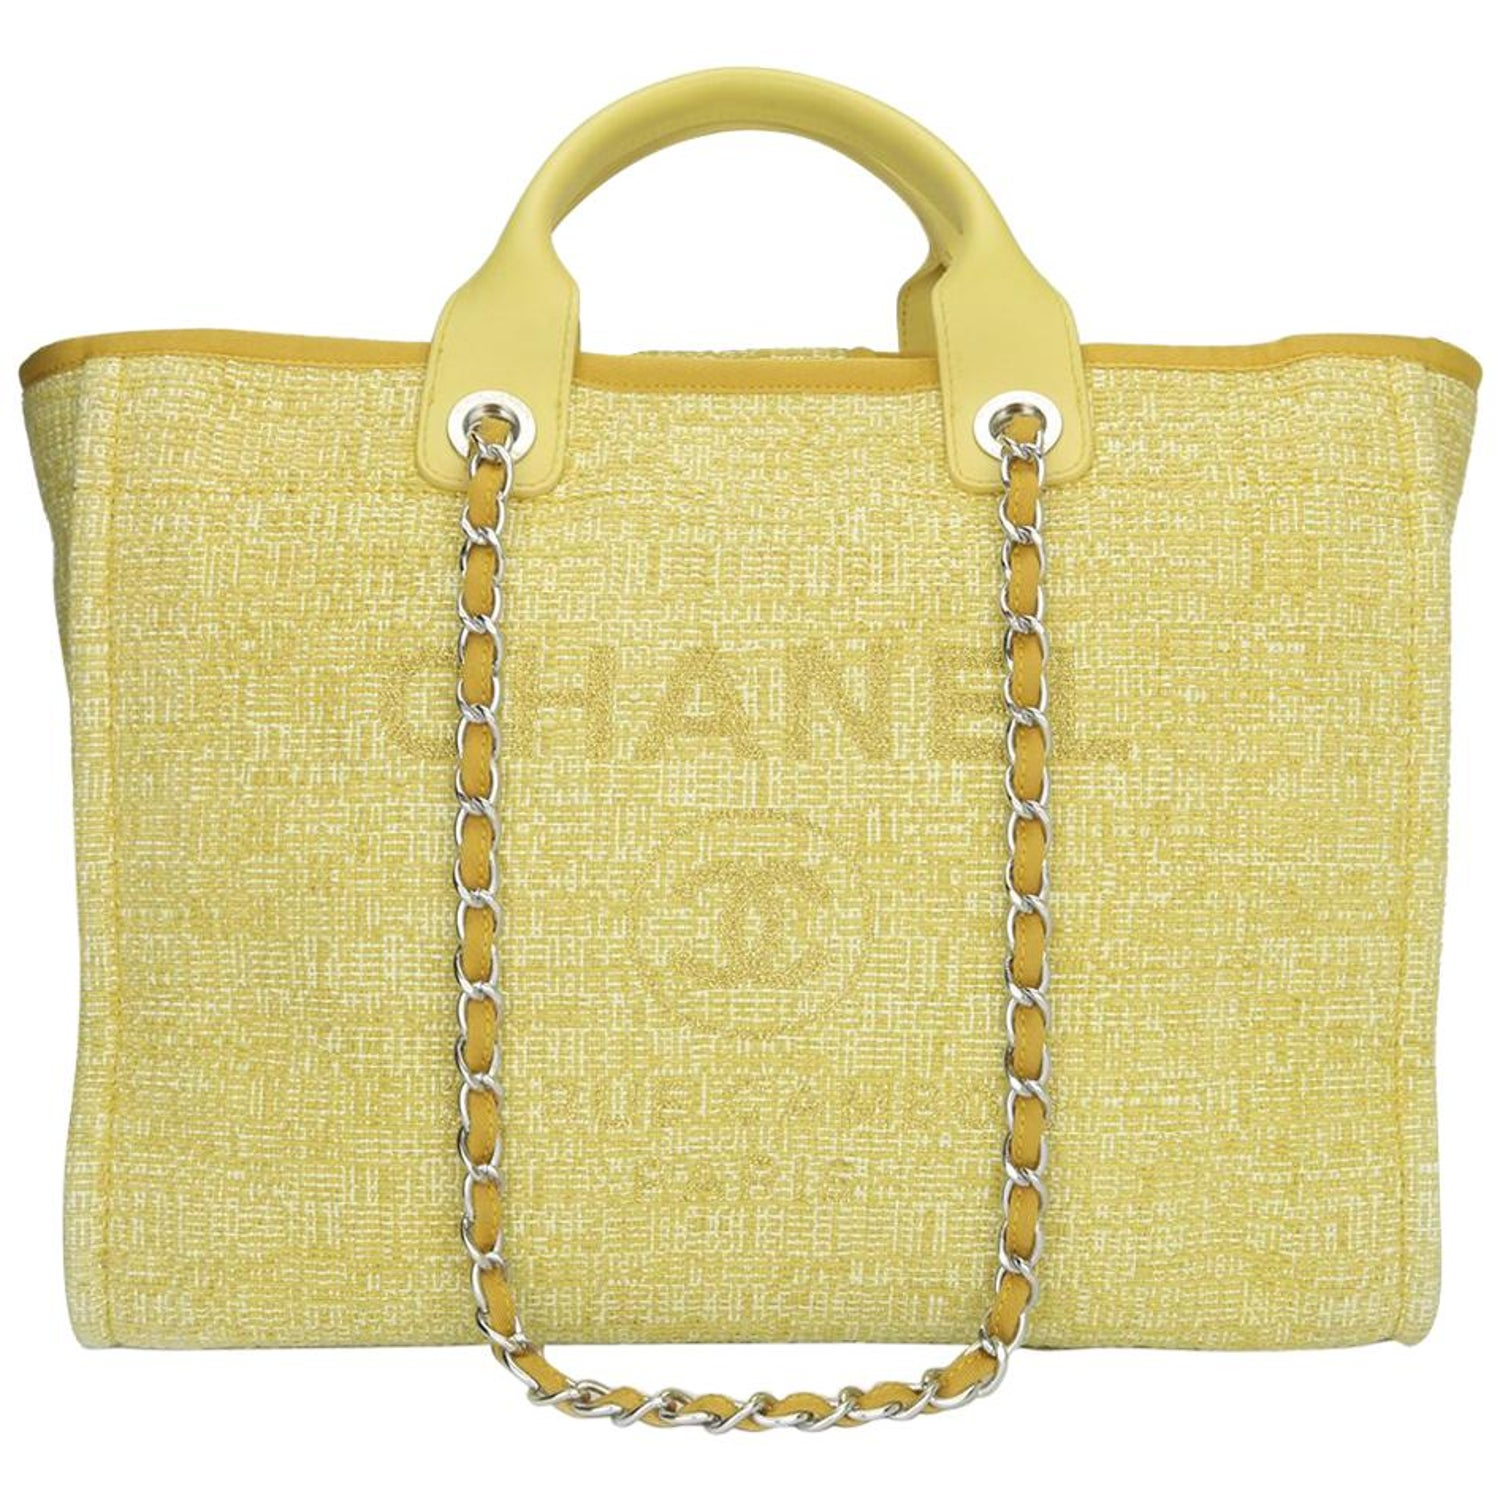 1c3eba01e4e5 CHANEL Deauville Tote Large Yellow Canvas with Light Gold Hardware 2018 at  1stdibs